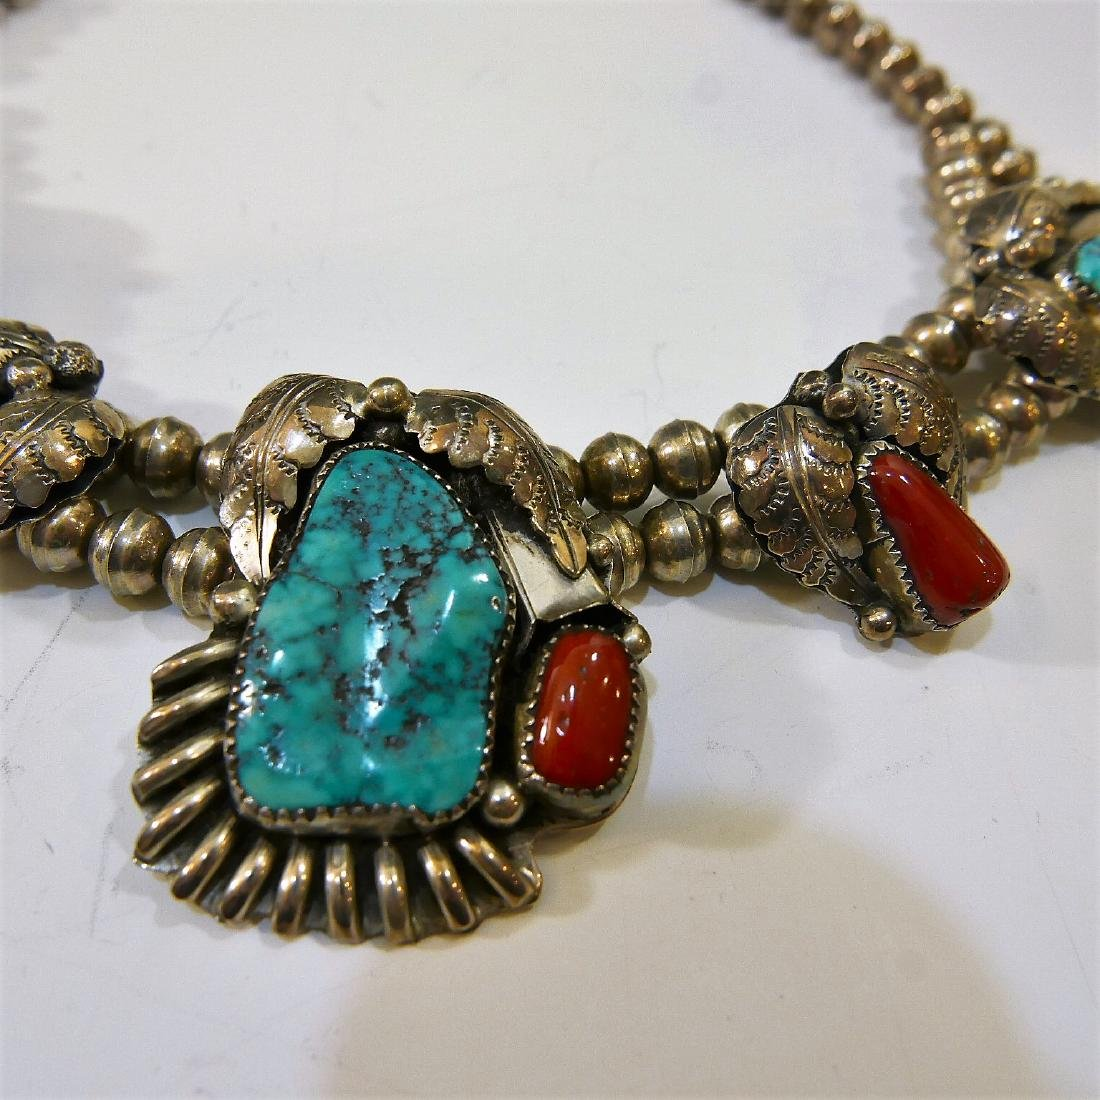 NAVAJO STERLING SILVER CORAL TURQUOISE NECKLACE - 2